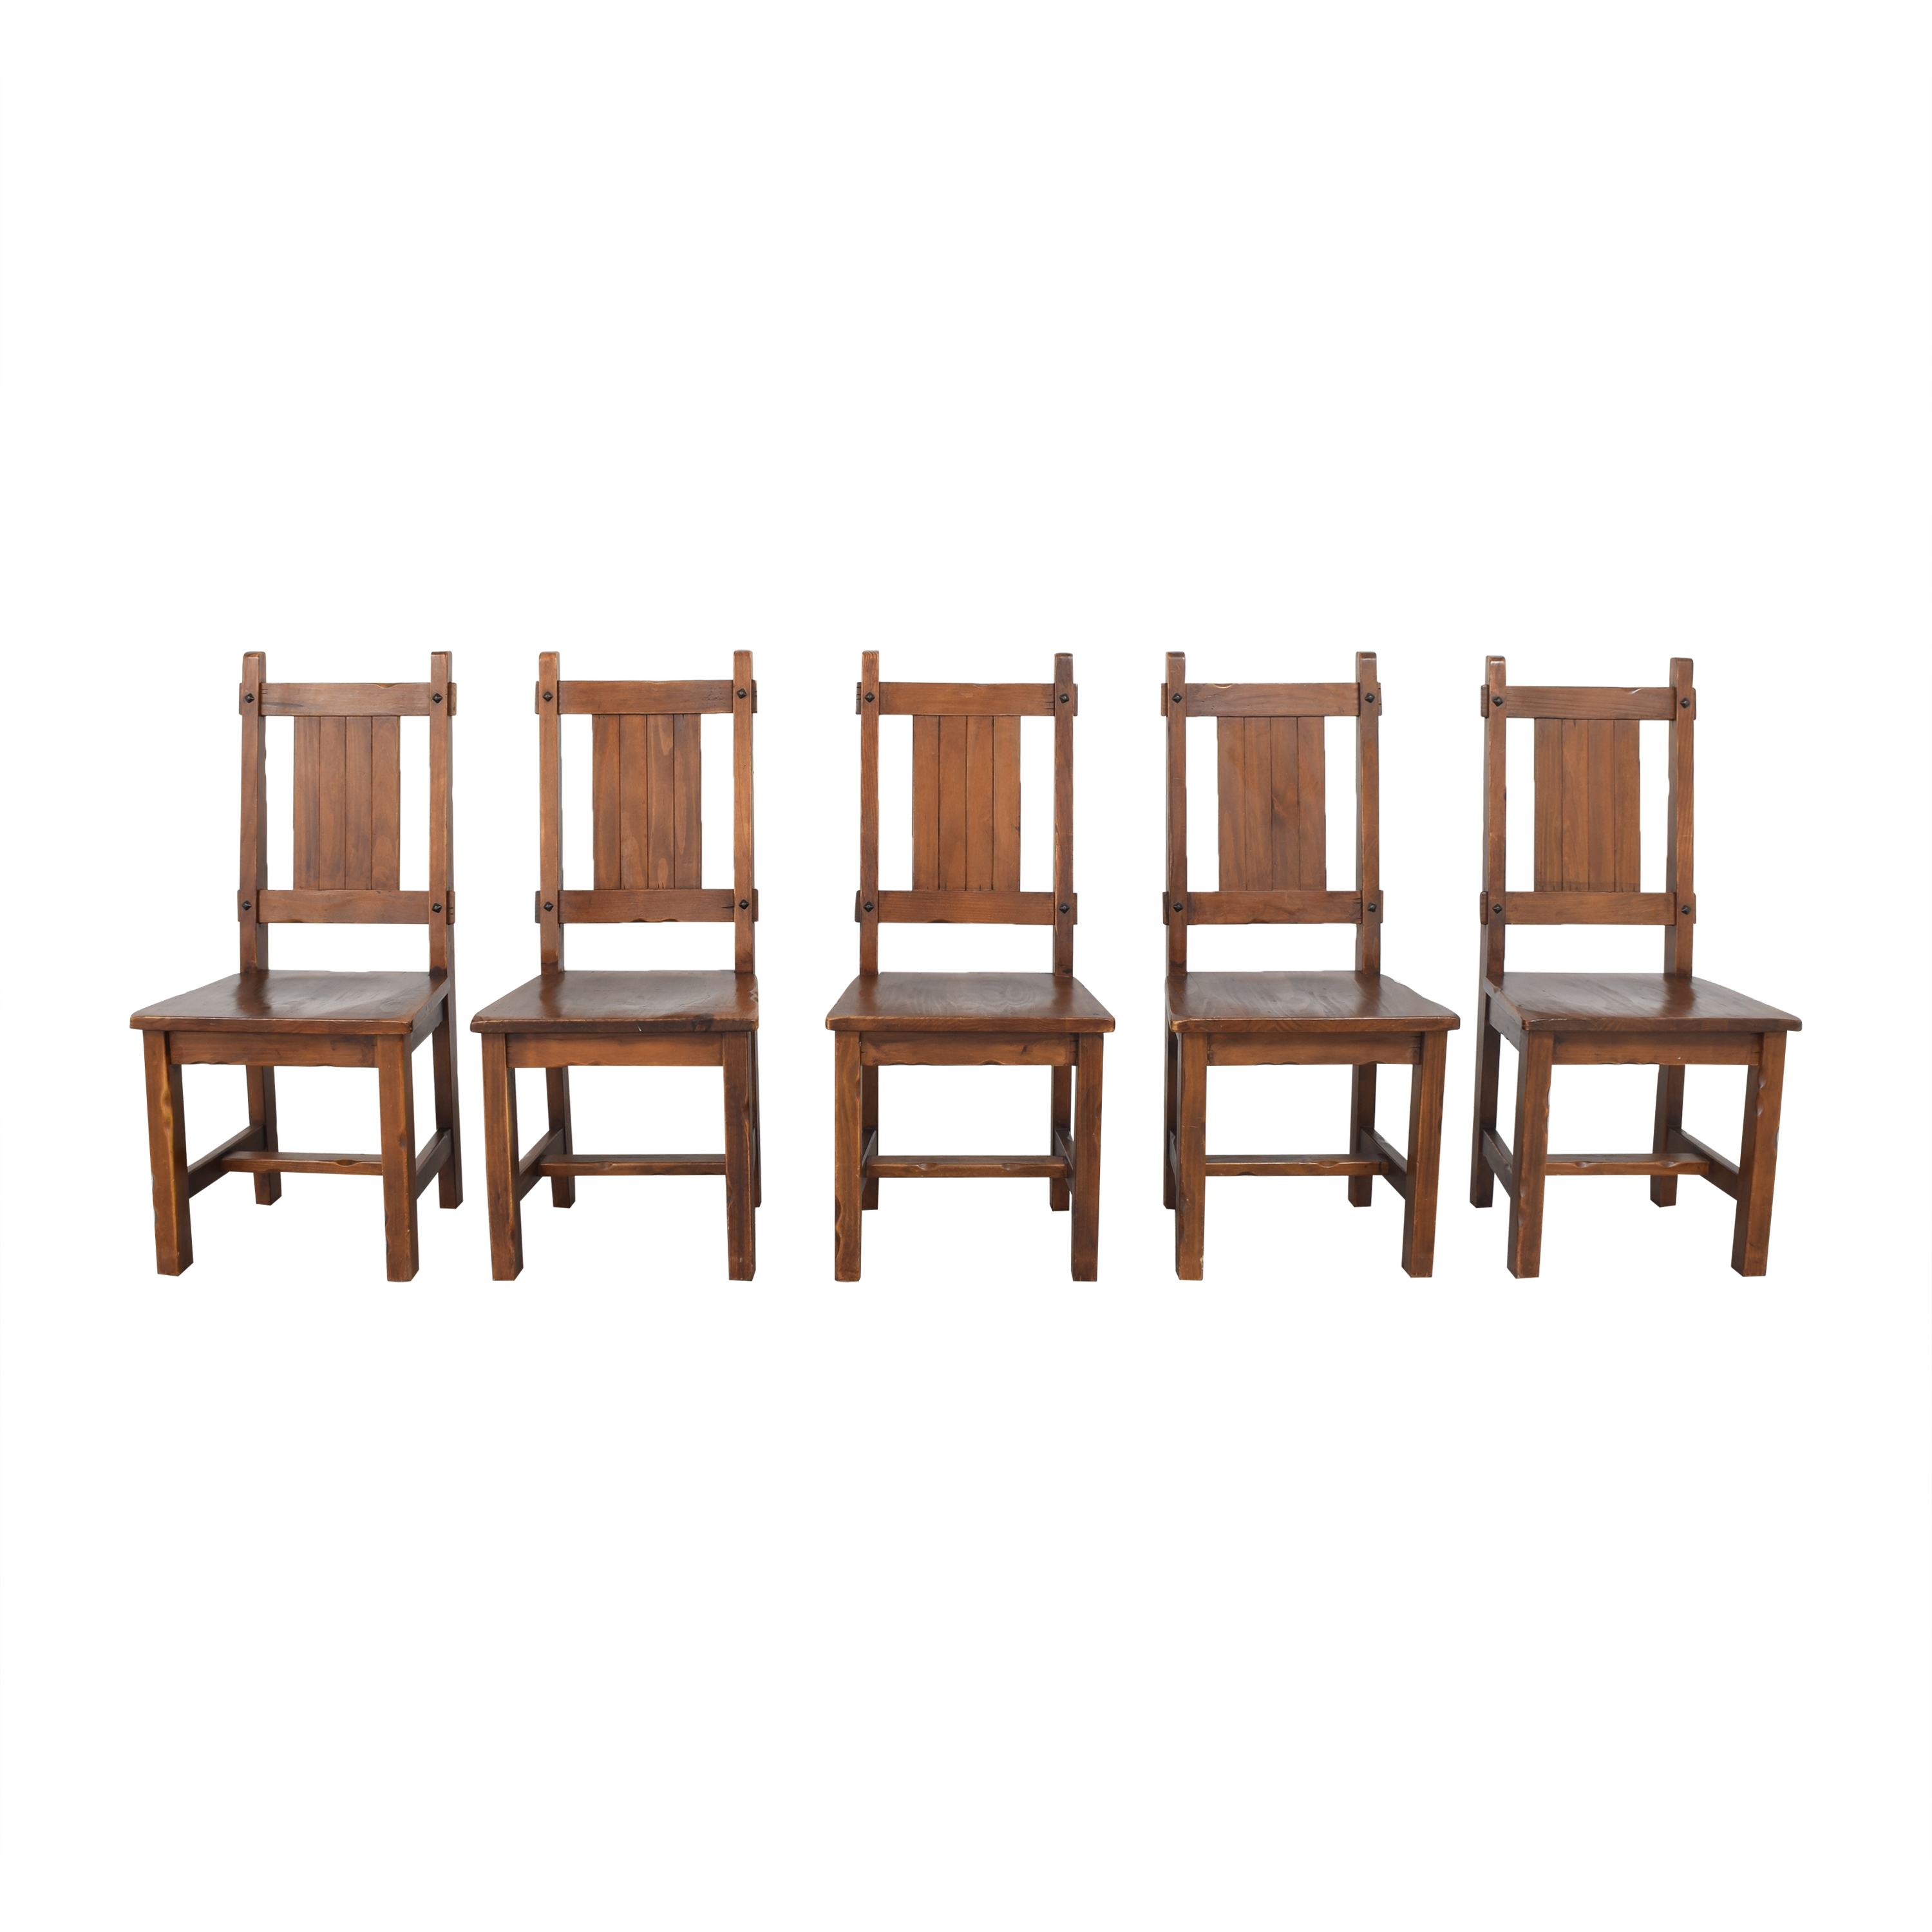 Pier 1 Pier 1 Rustic Dining Chairs ct